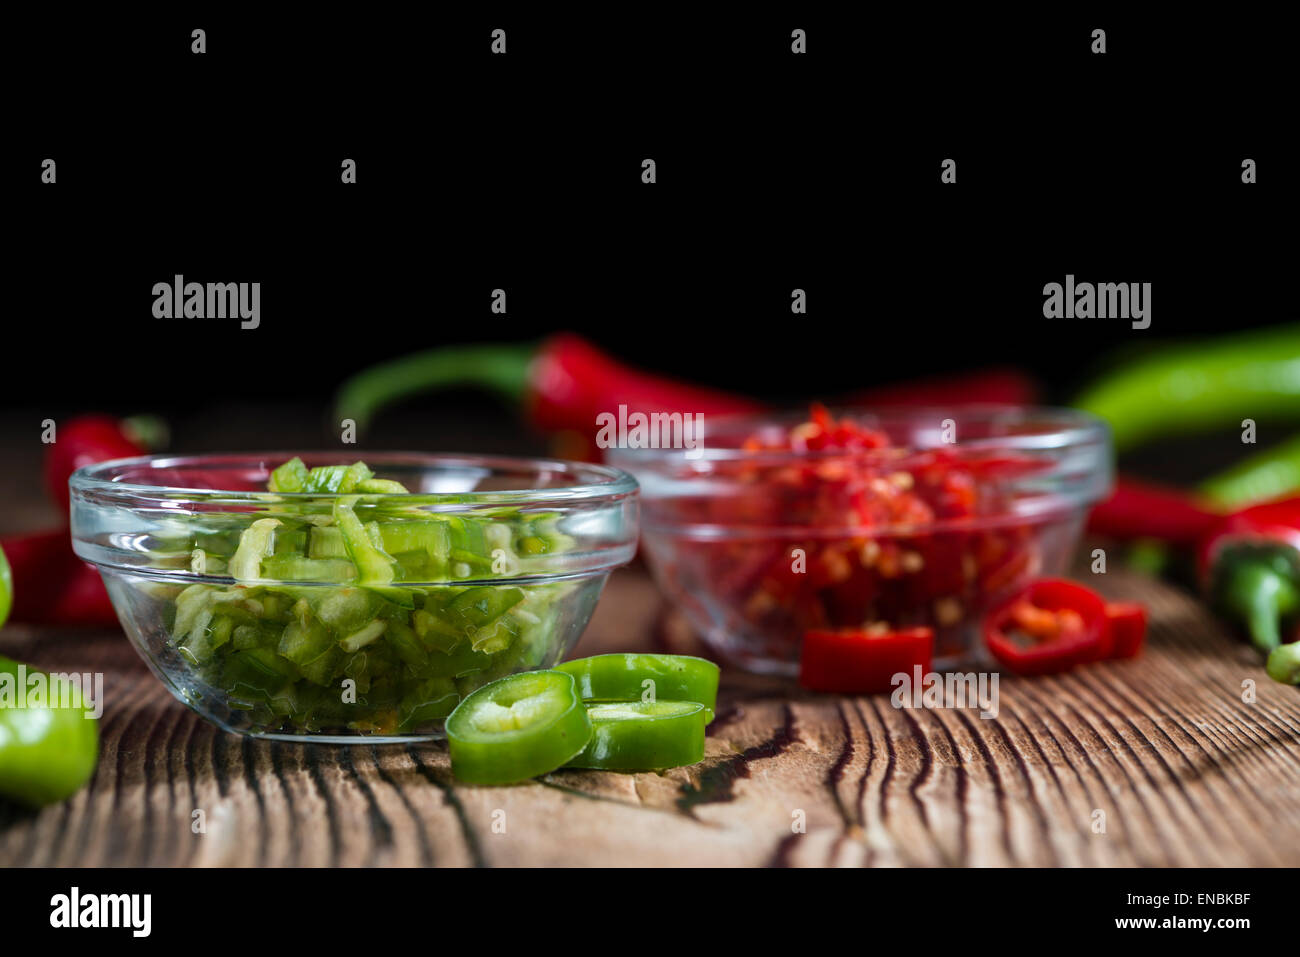 Mixed cutted Chilis (red and green) on vintage wooden background - Stock Image